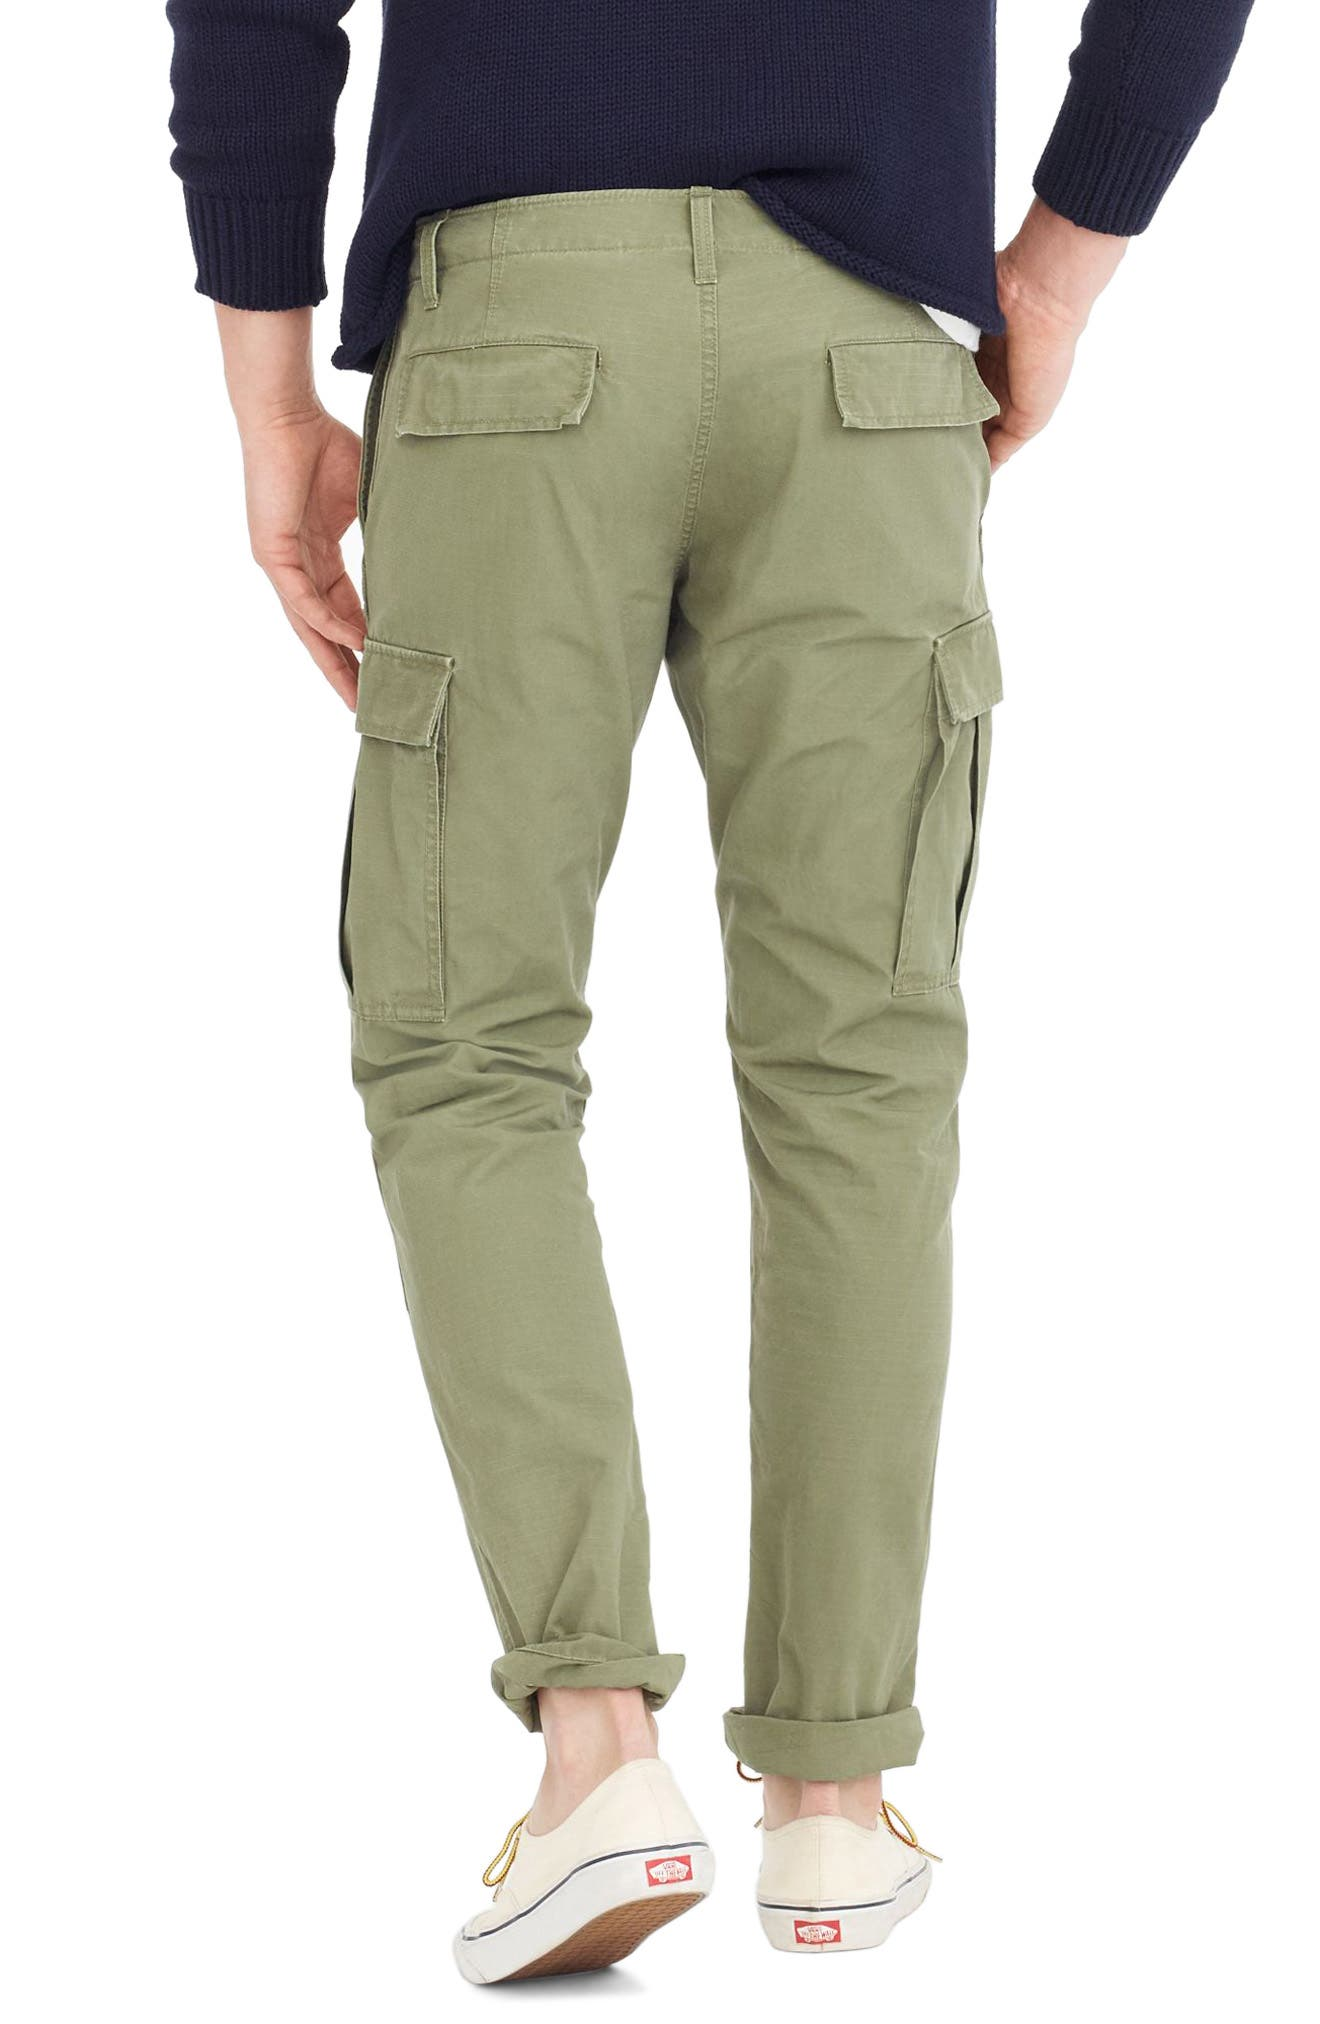 770 Straight Fit Ripstop Cargo Pants,                             Alternate thumbnail 2, color,                             300